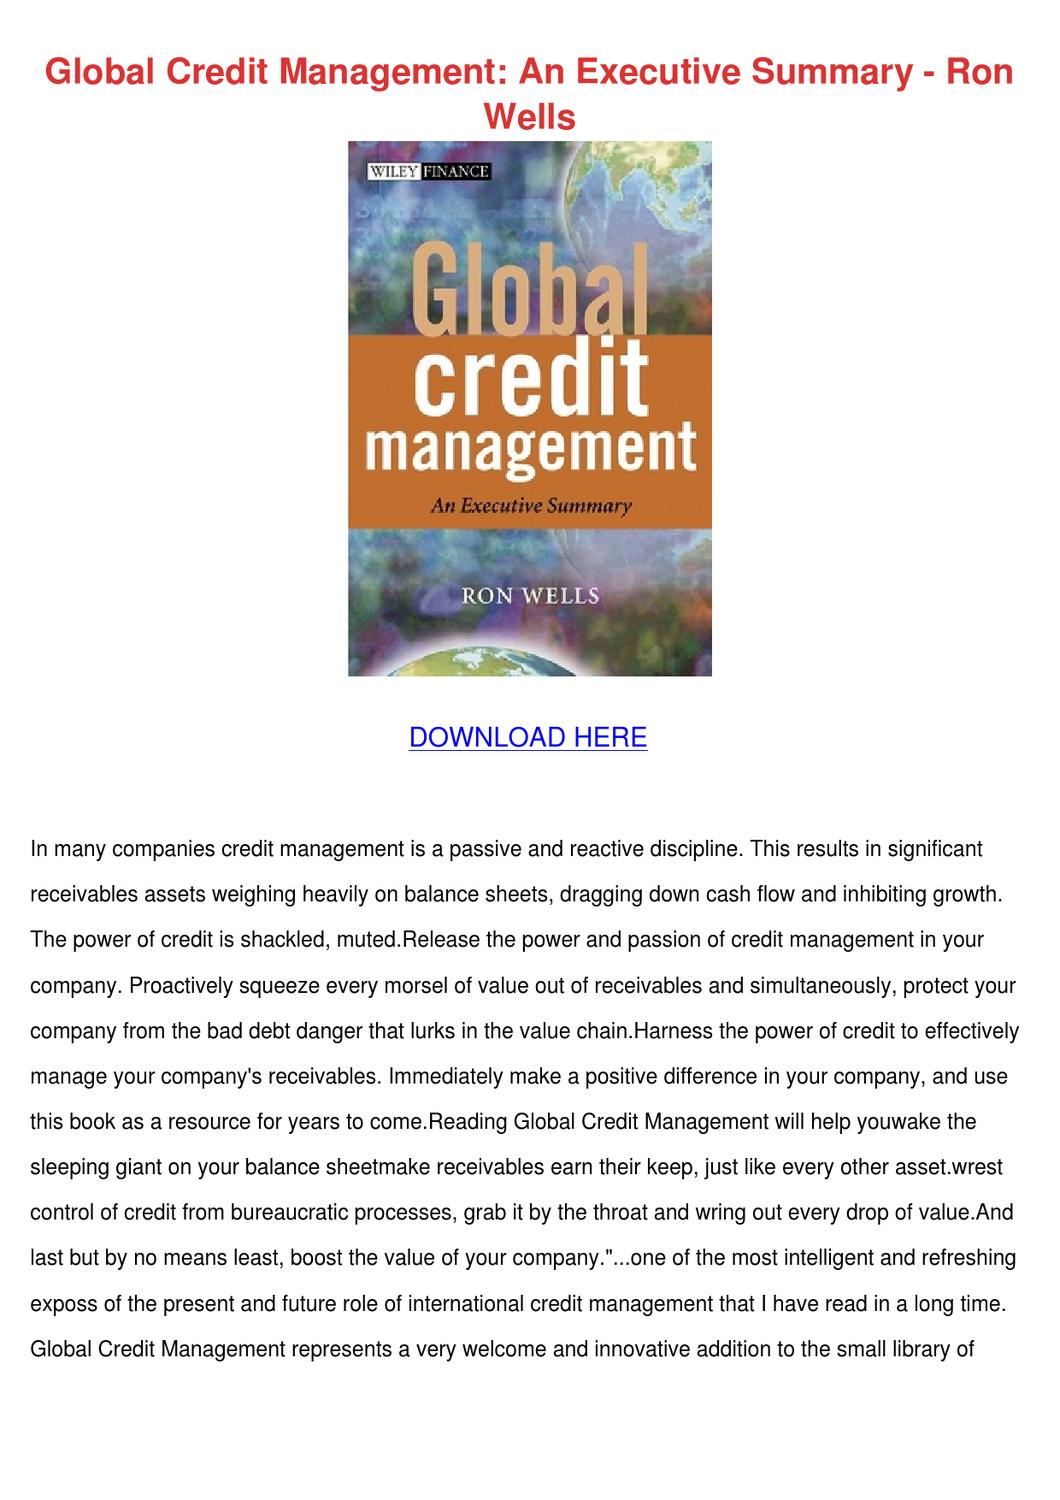 manual overview by a credit manager